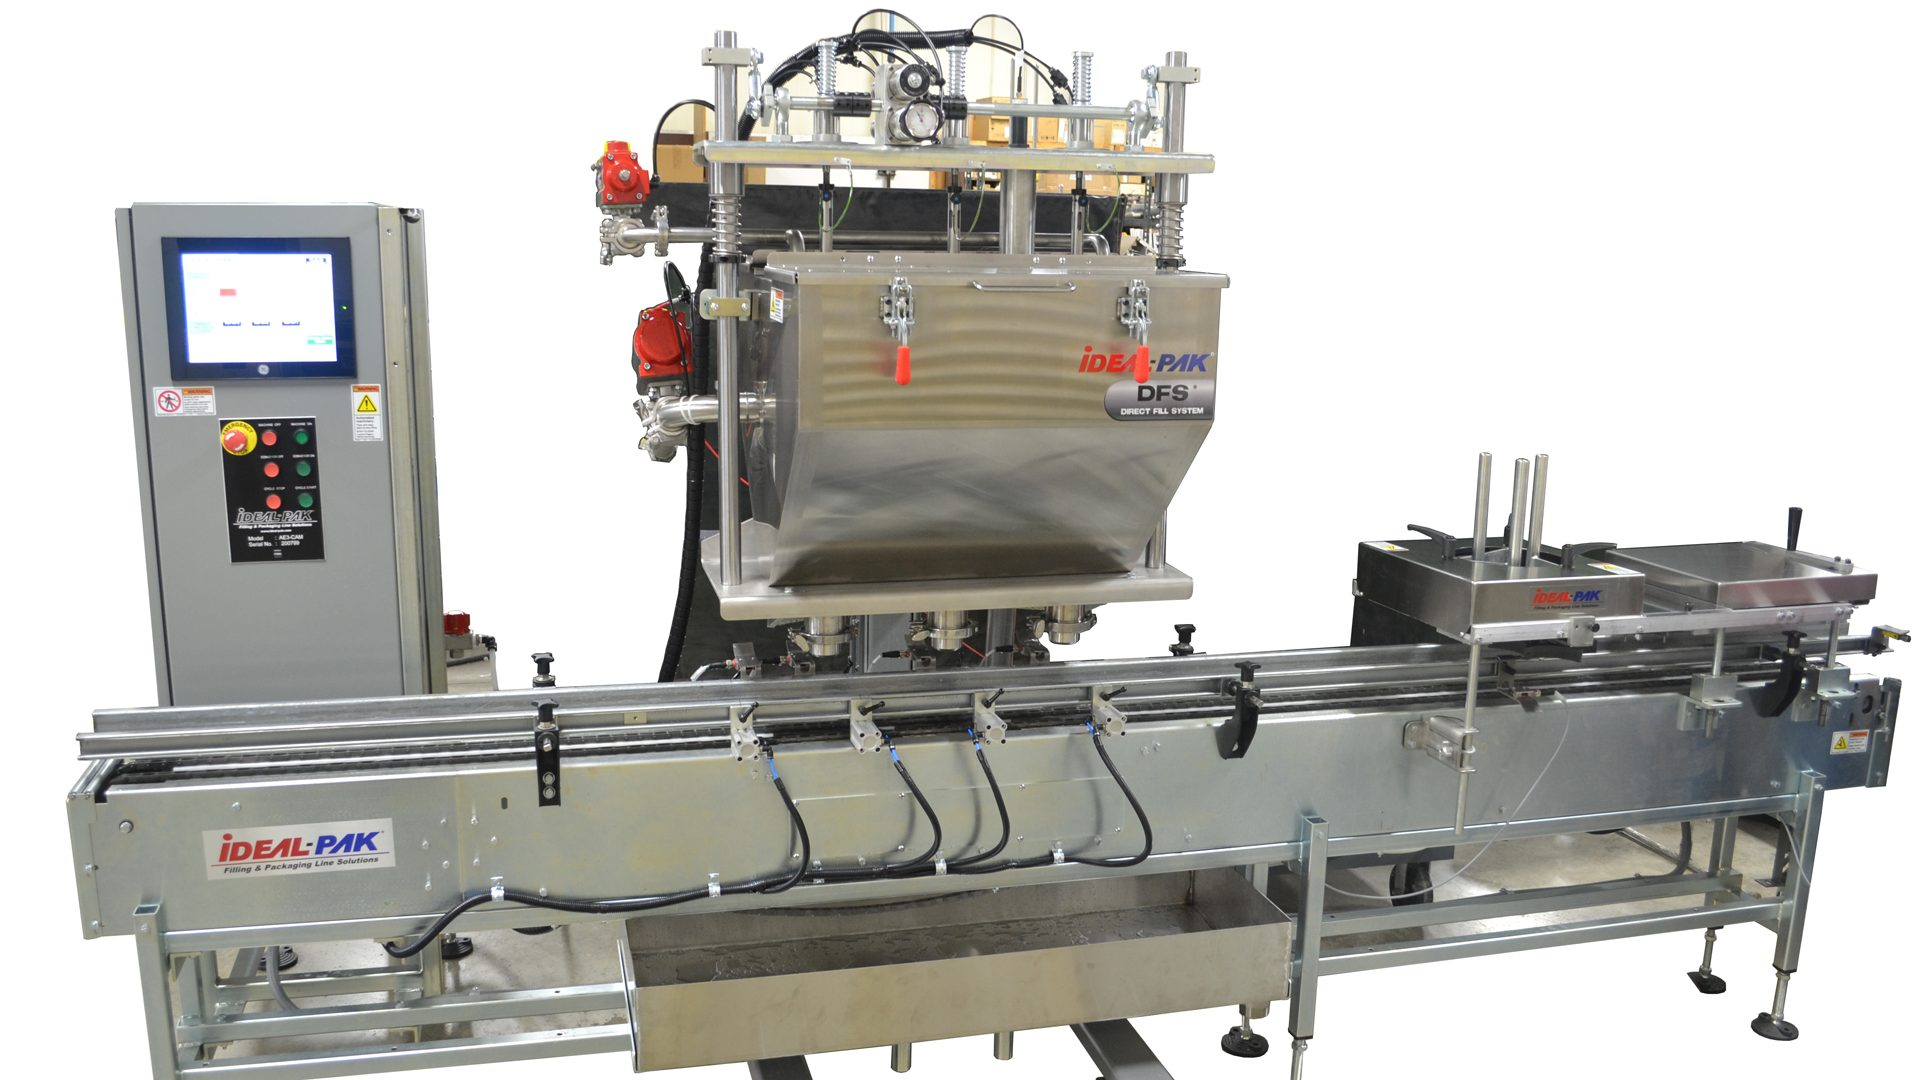 3-head filling machine with DFS Cart for Pint to Gallon Cans.